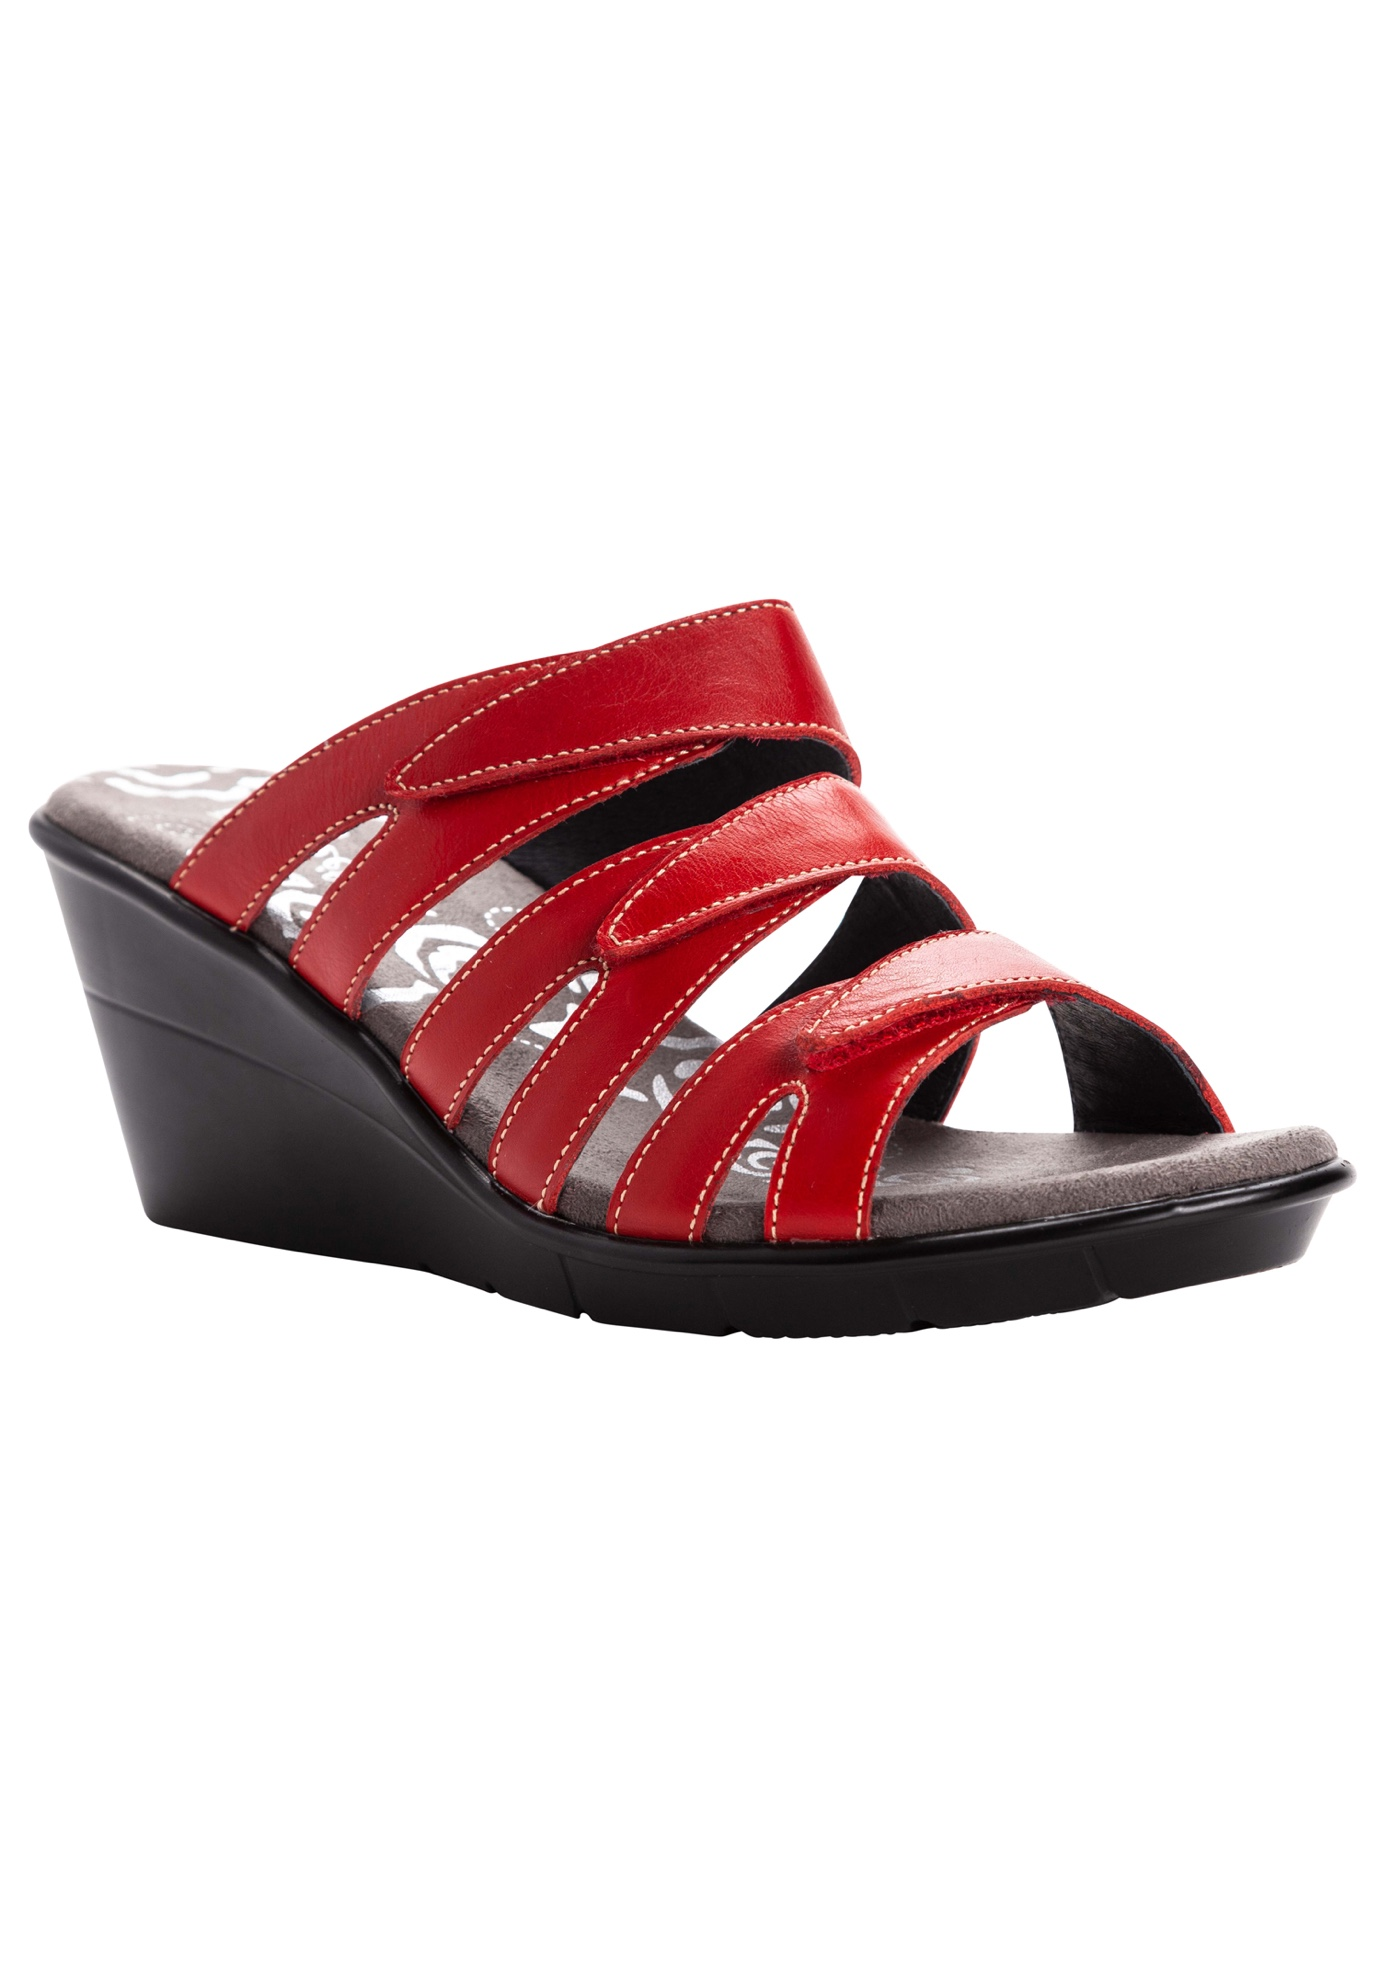 Lexie Wedge Slide Sandal ,